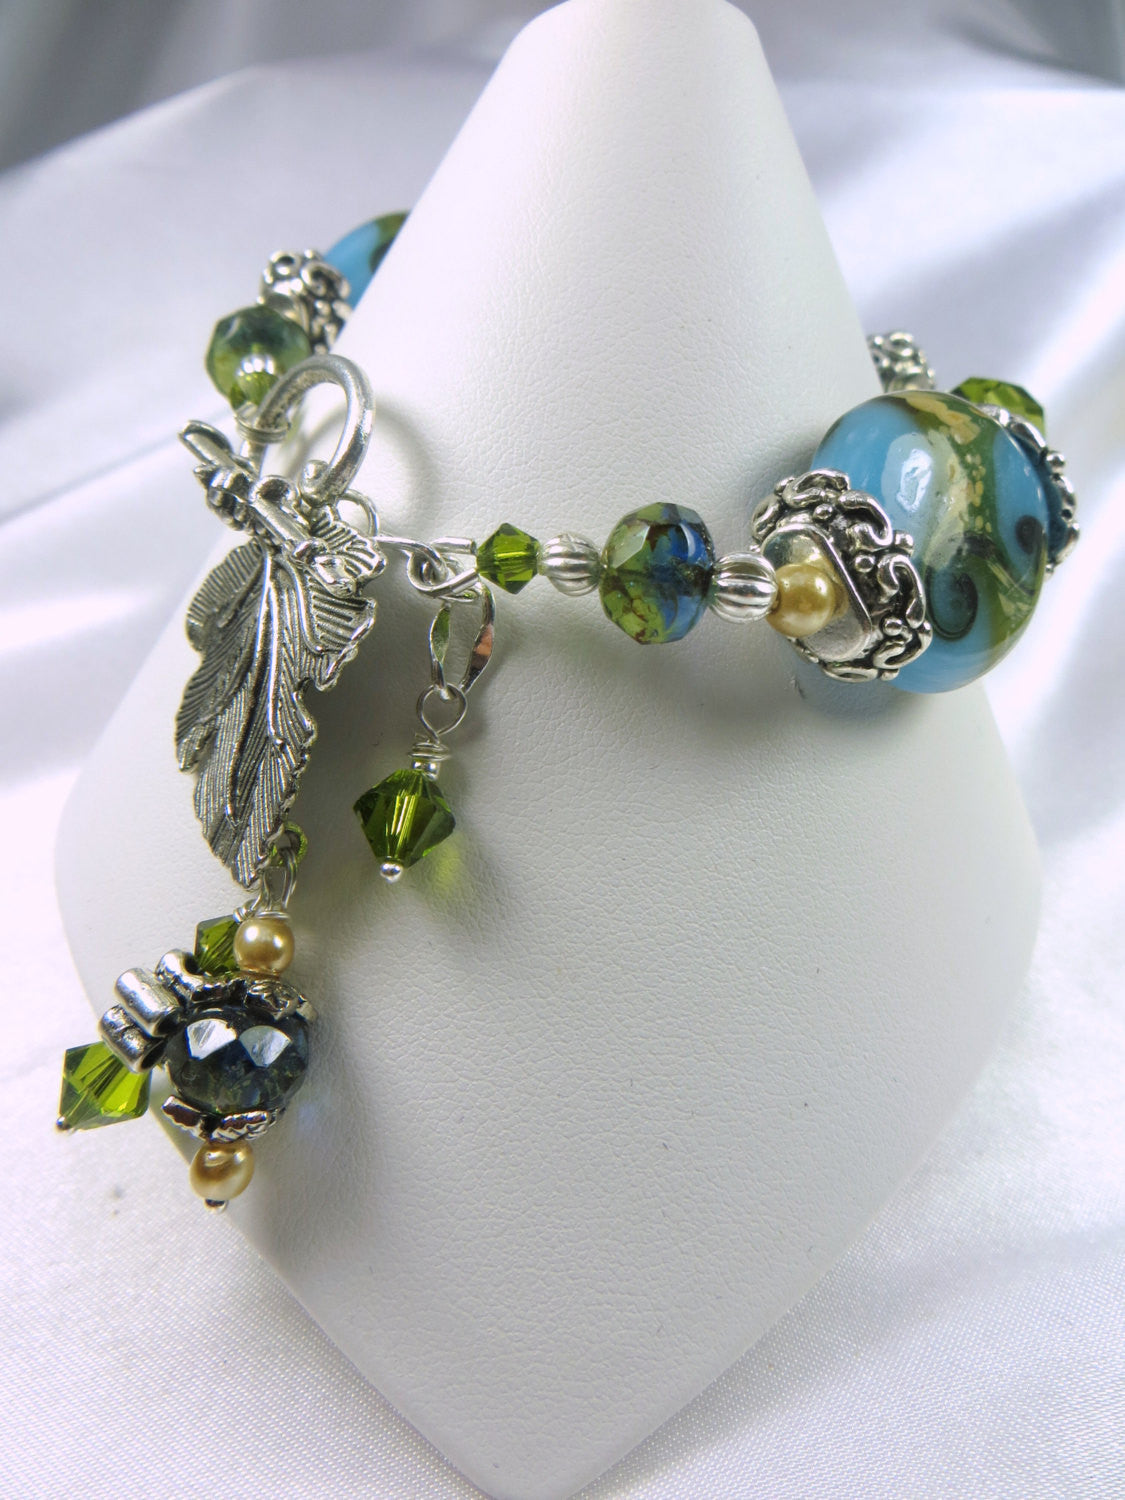 Lampwork Glass Bracelet in Seascape Teal and Olive Green with silver leaf toggle clasp with charms - Odyssey Creations